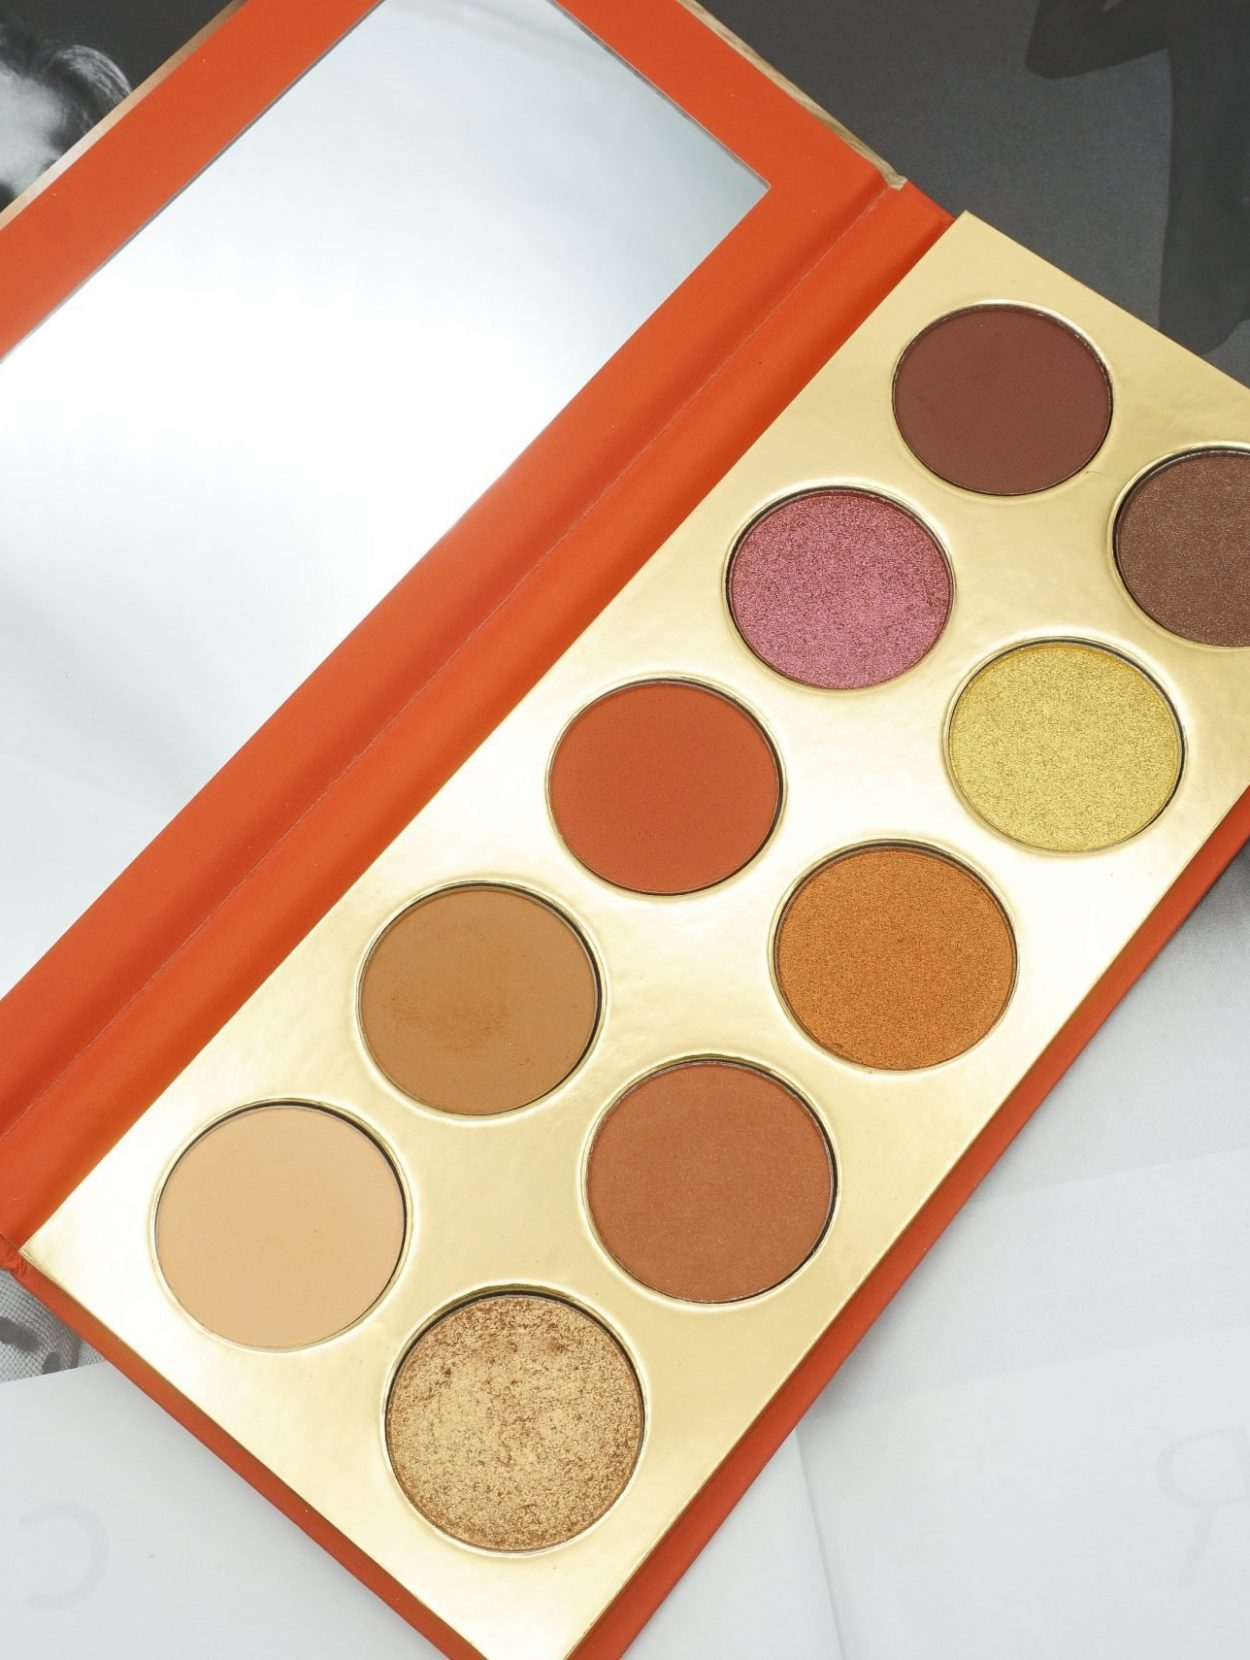 KKW Beauty Sooo Fire Eyeshadow Palette | Review & Swatches ⋆ Beautymone